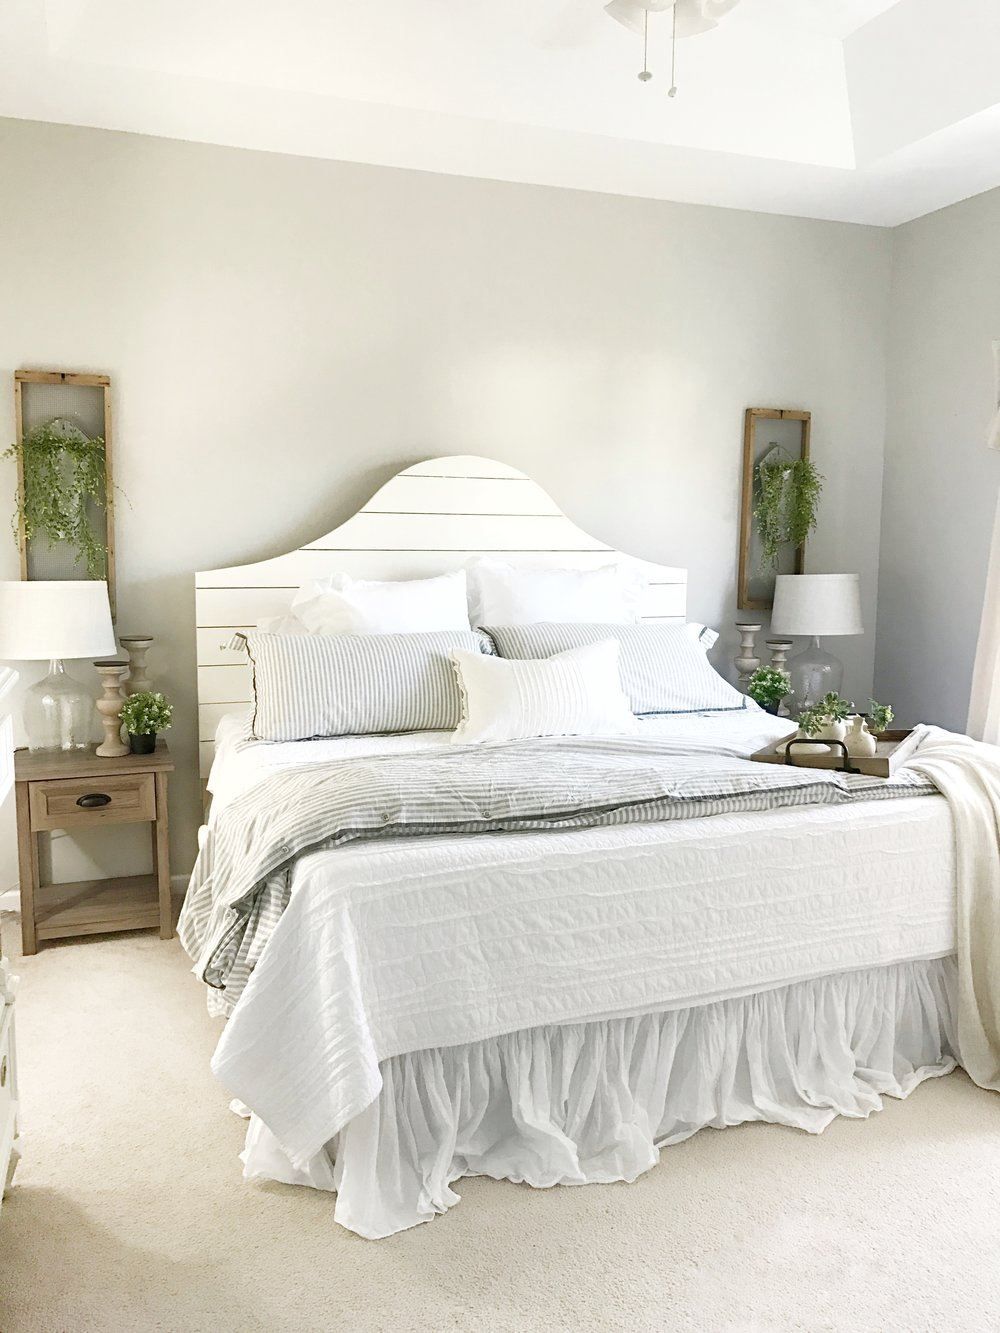 The Simple Abodes Farmhouse Style Master Bedroom Interior Design By Plum Pretty Decor And